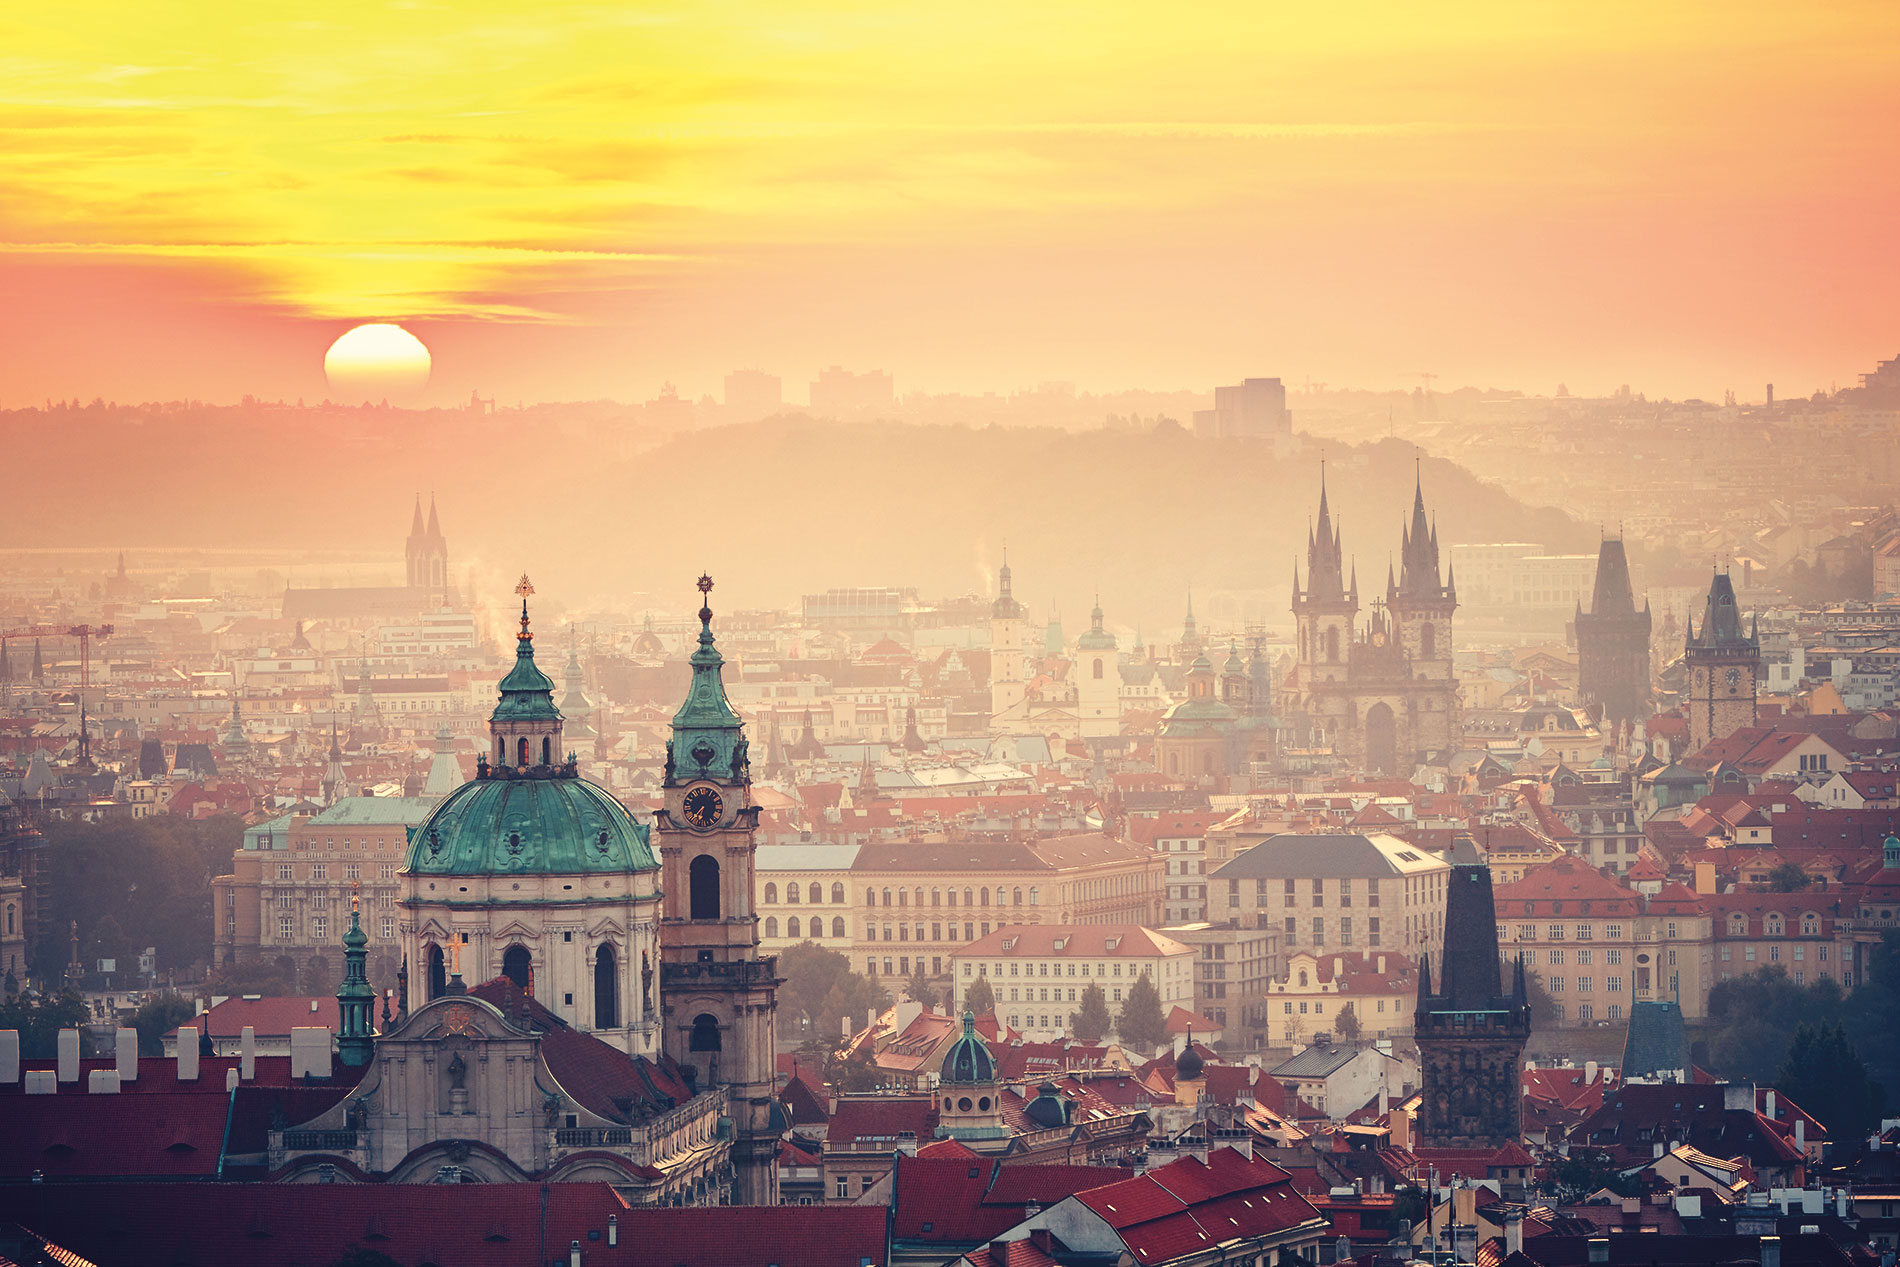 Sunset over the beautiful city of Prague, Czech Republic